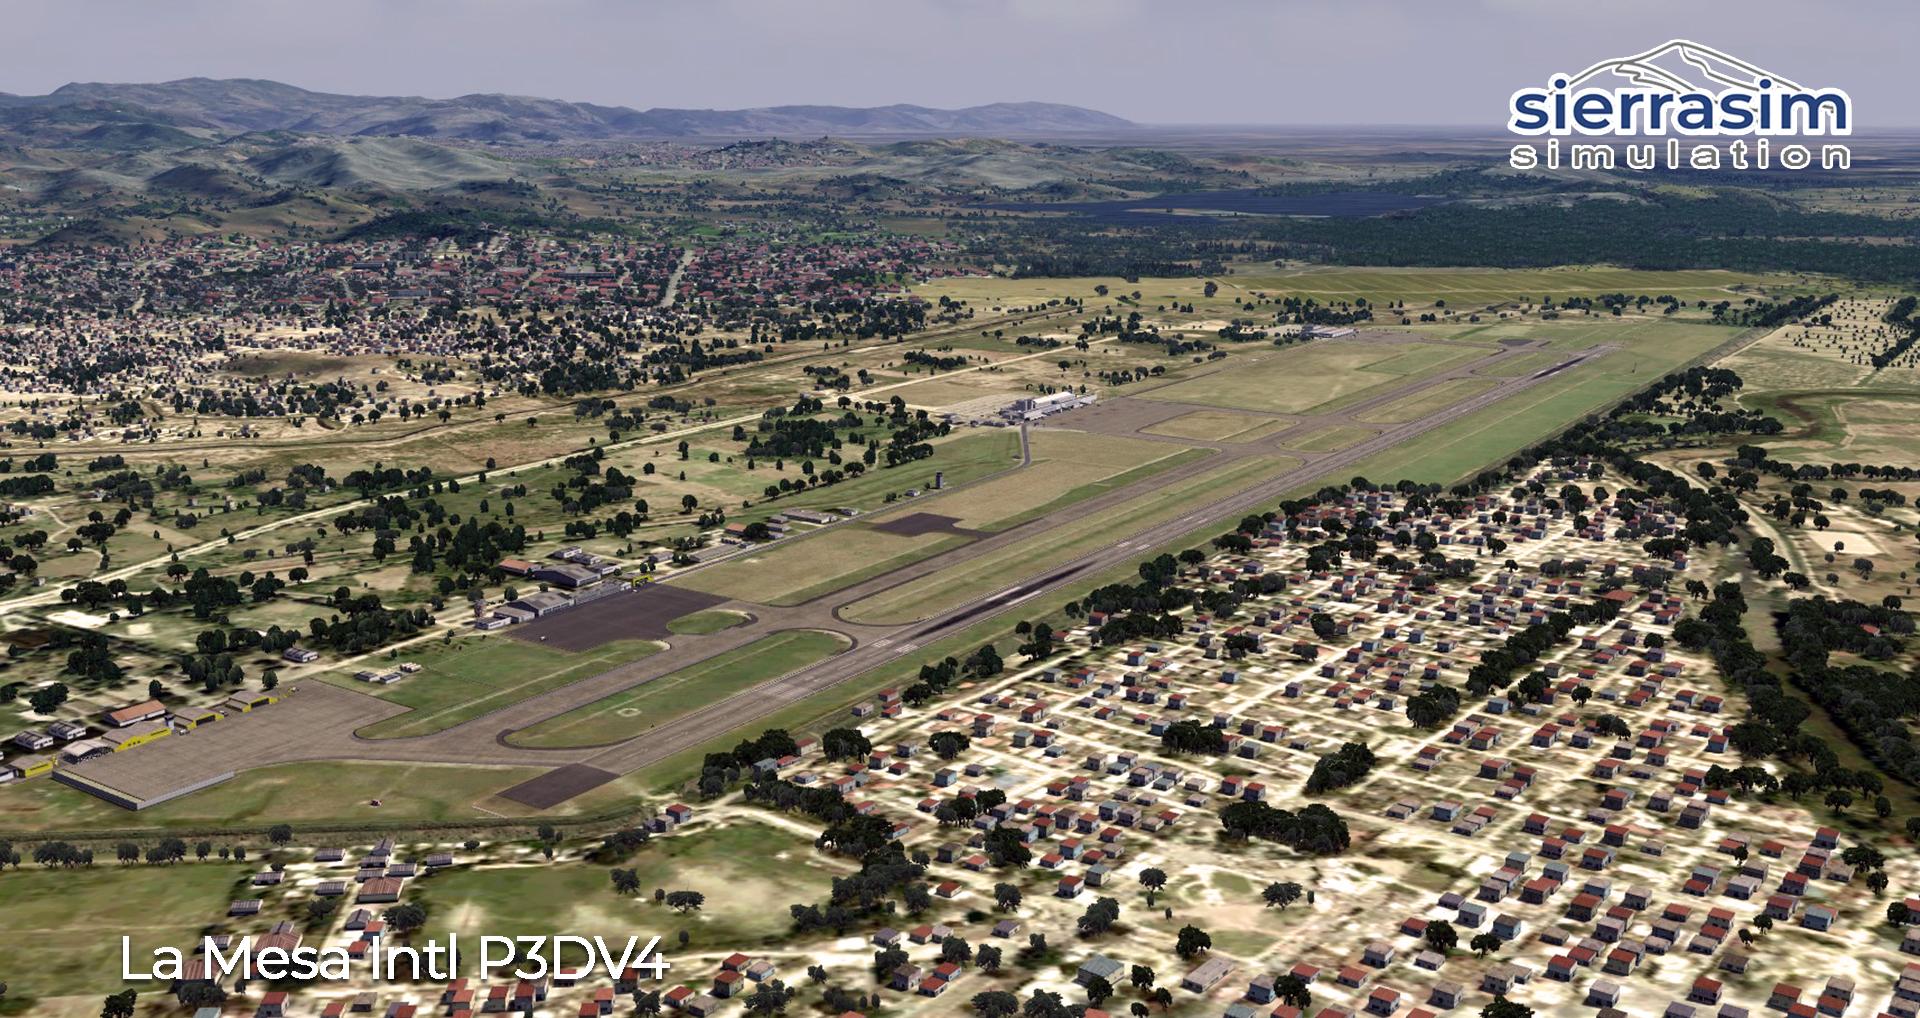 SIERRASIM SIMULATION - MHLM LA MESA INTERNATIONAL AIRPORT P3D4-5